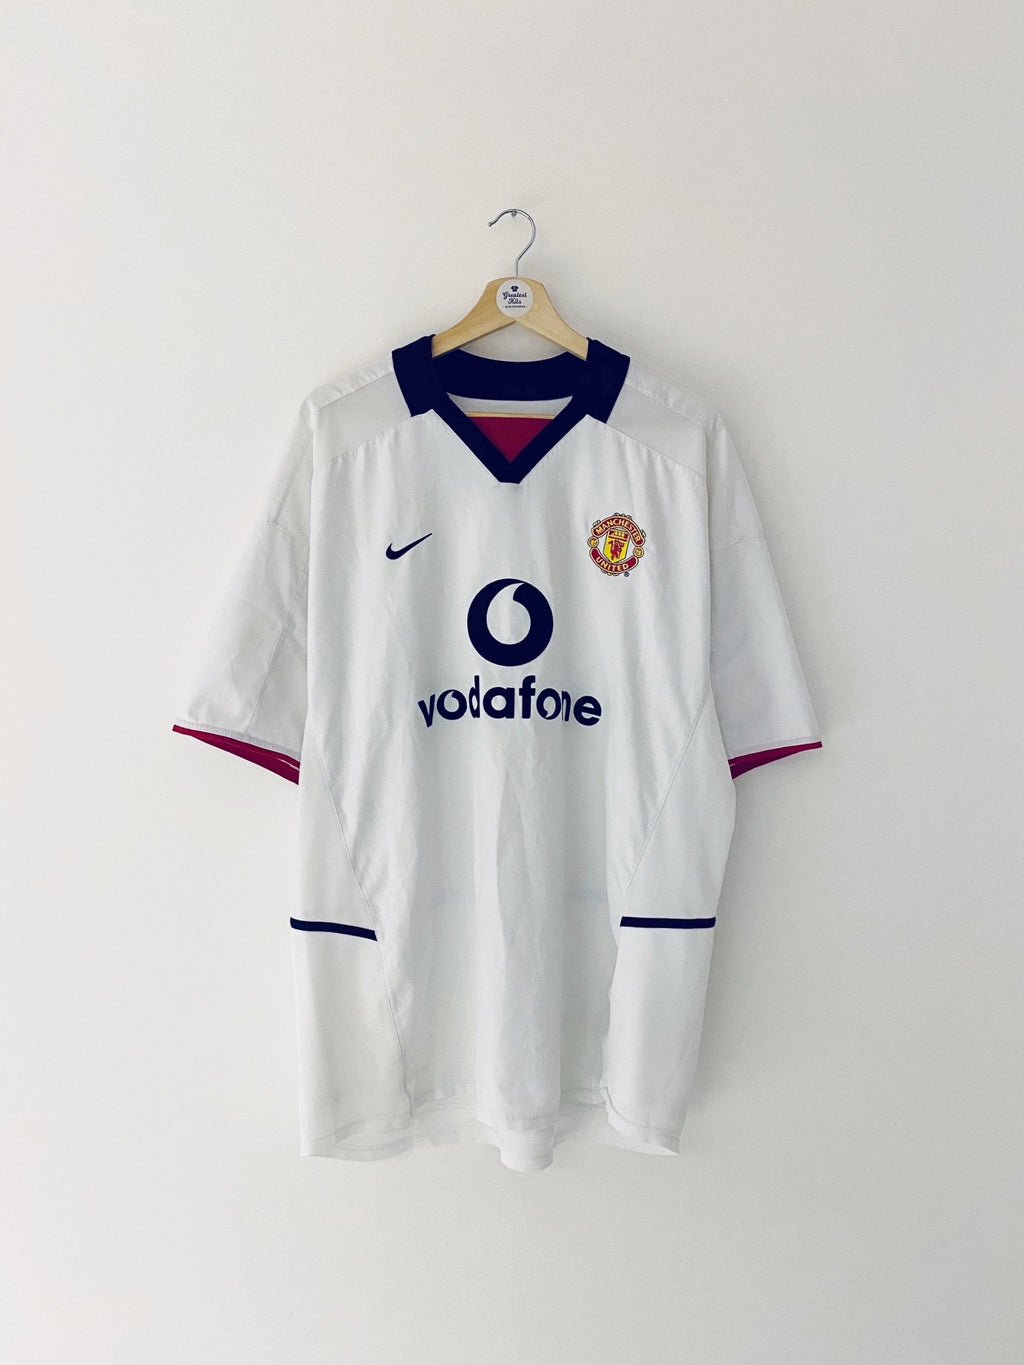 2002/03 Manchester United Away Shirt (XL) 8.5/10